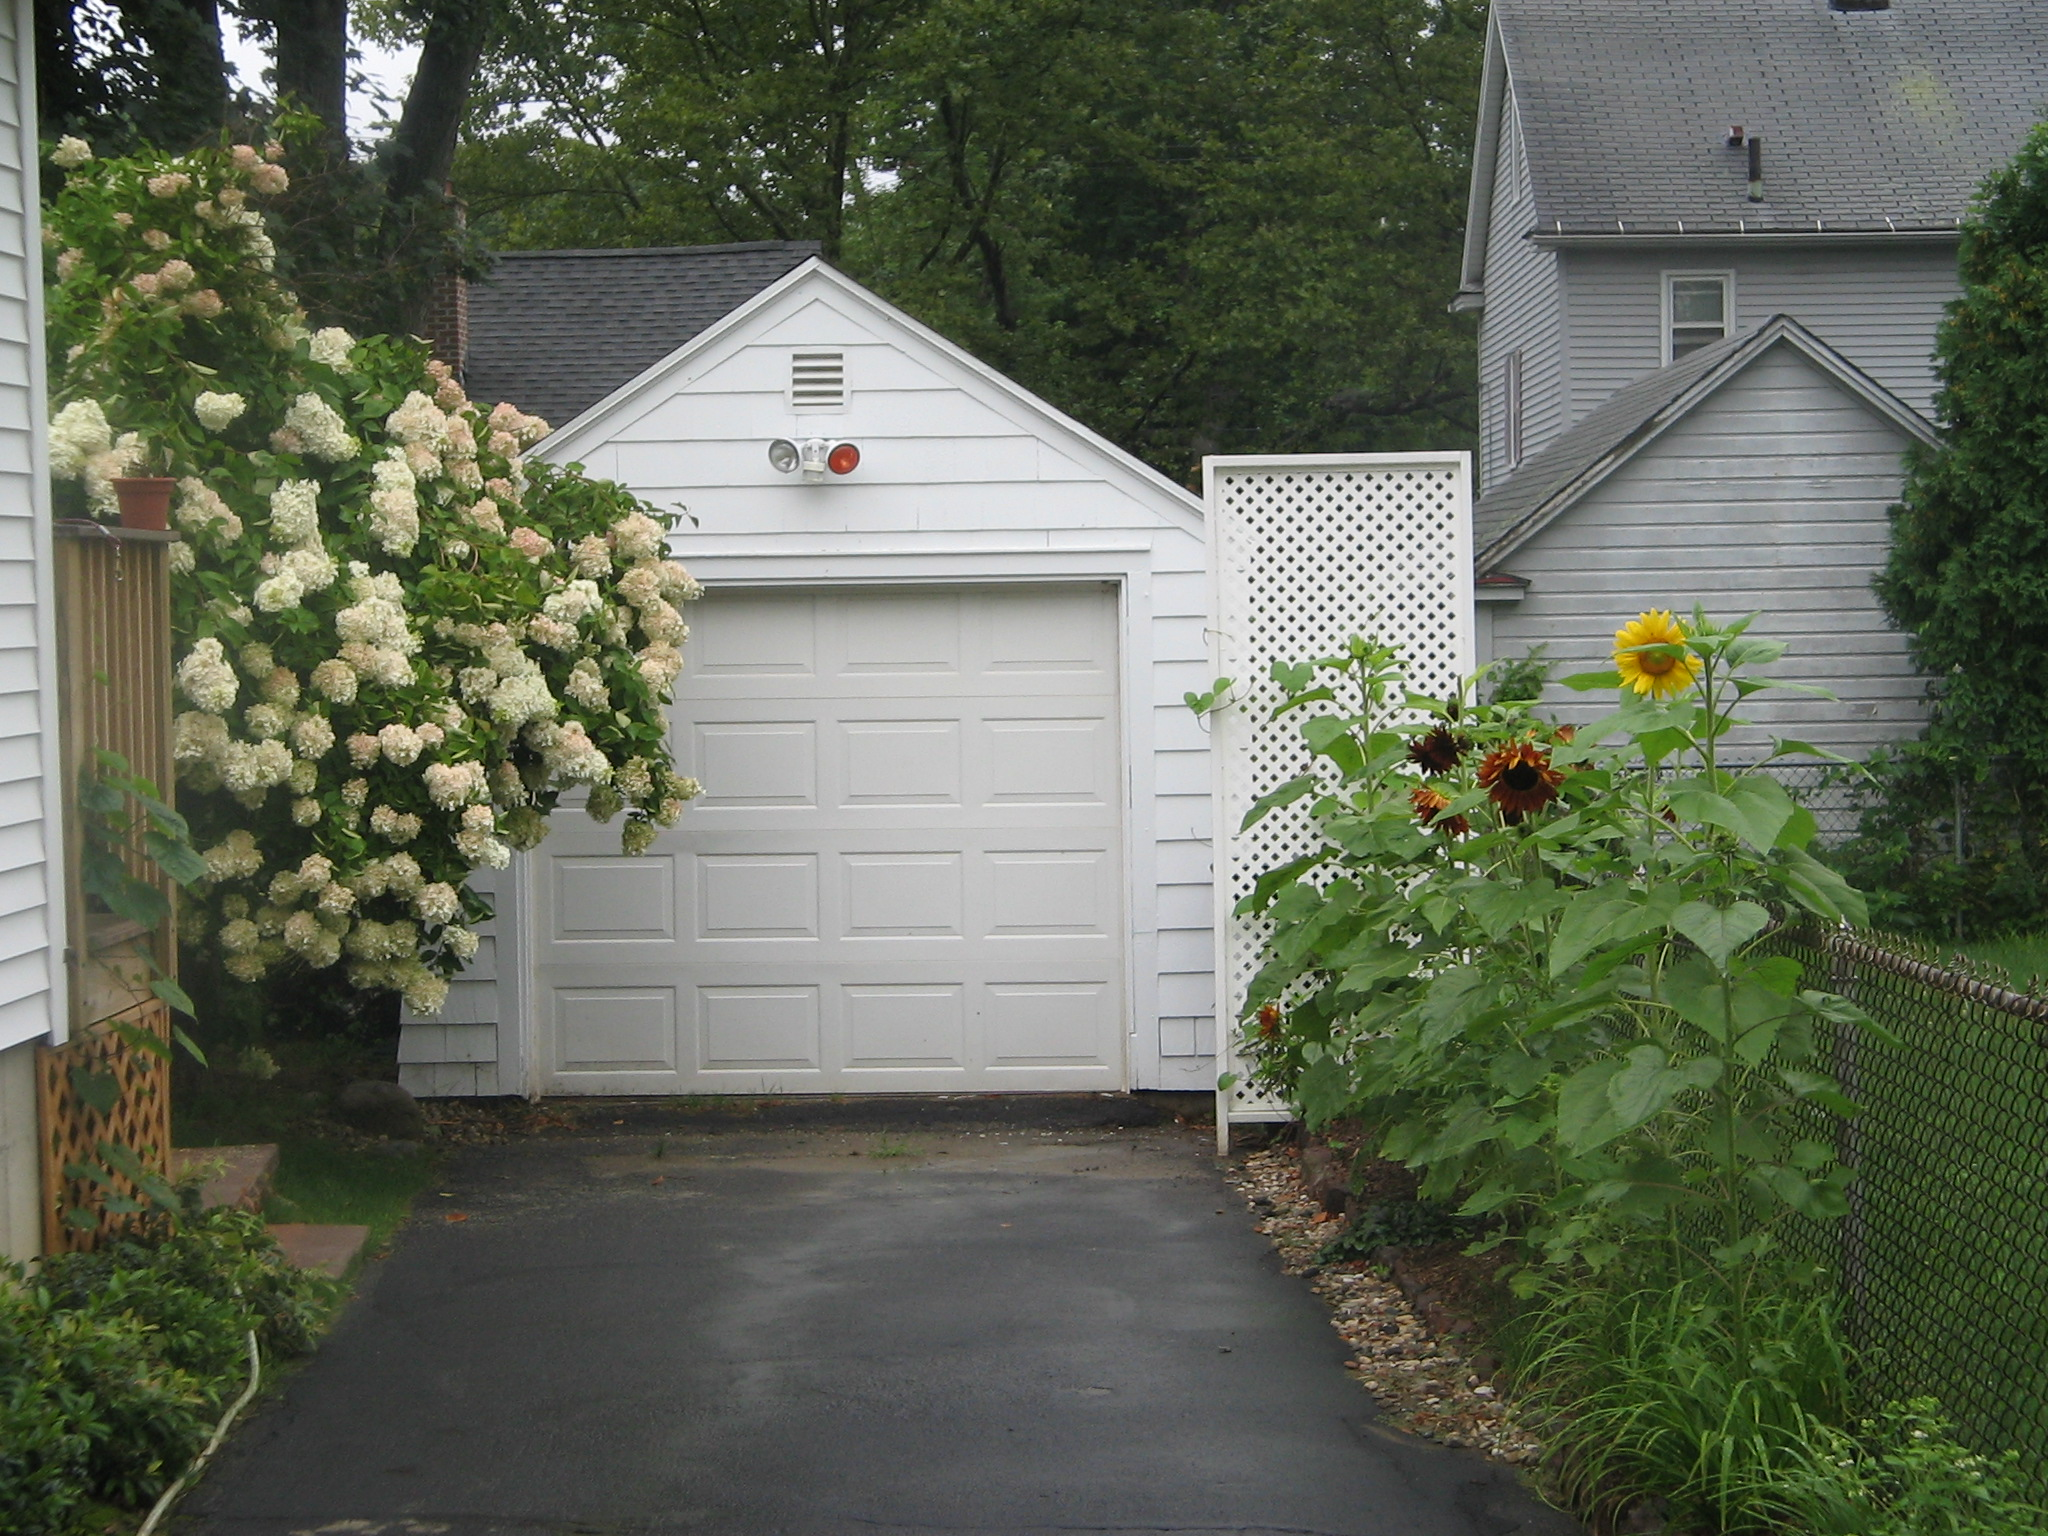 Front View of Driveway